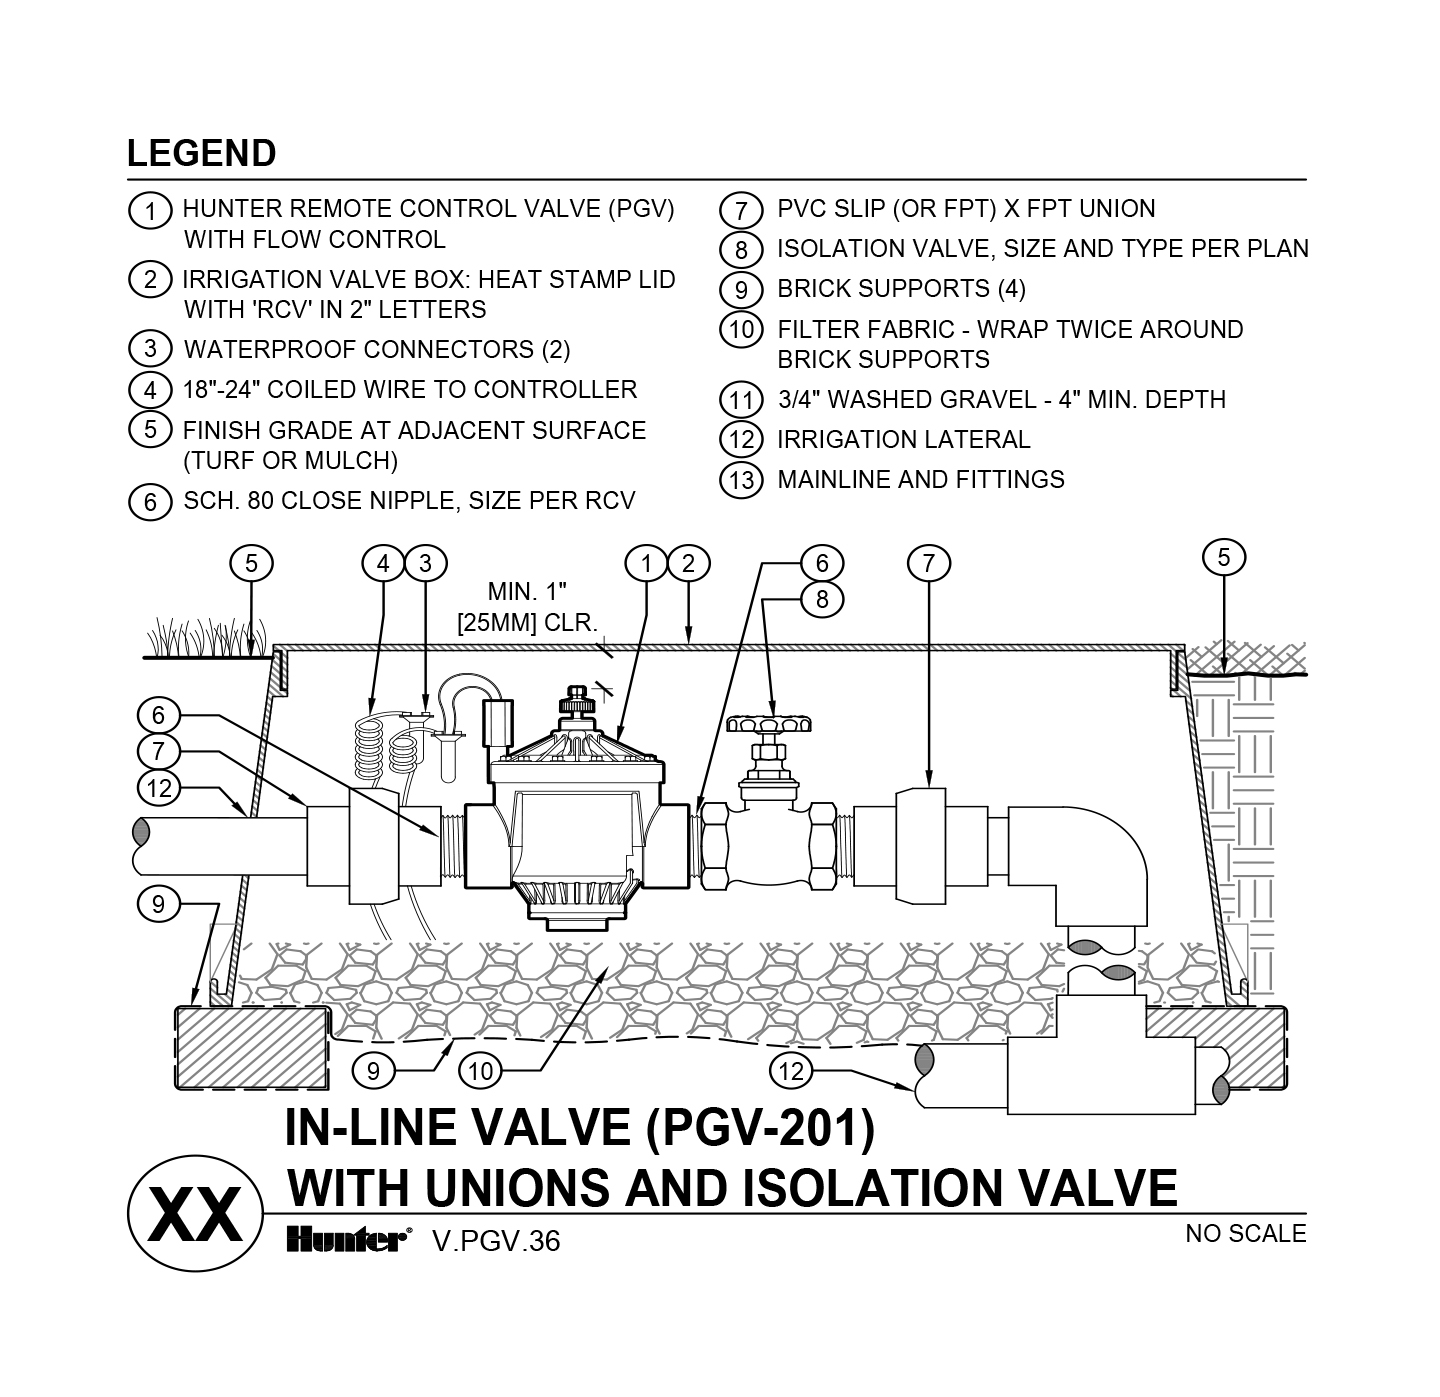 CAD - PGV-201 with unions and shutoff valve